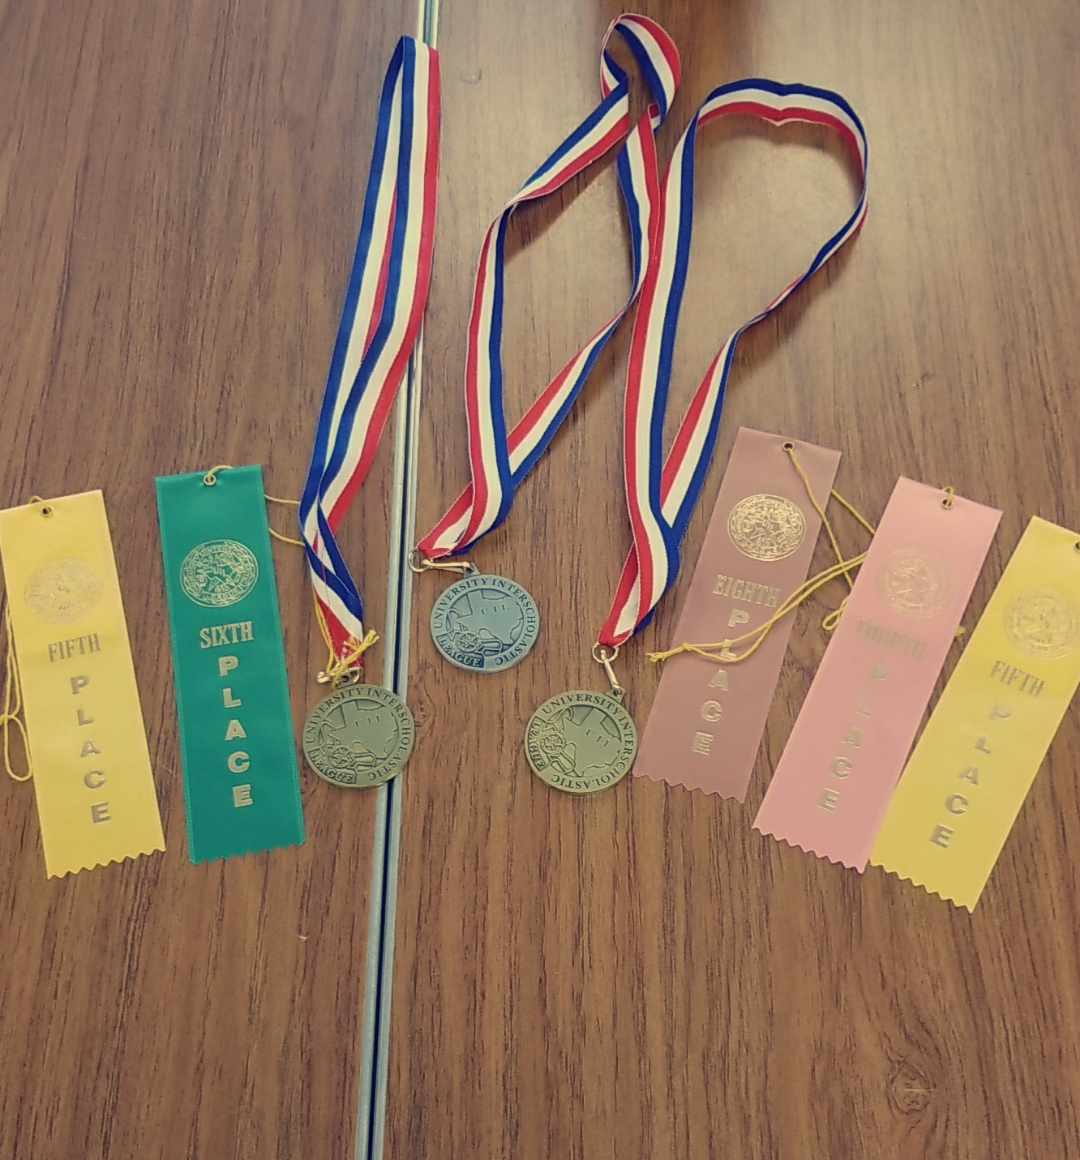 Students place in Journalism UIL Central Texas practice meet and receive medals and ribbons.